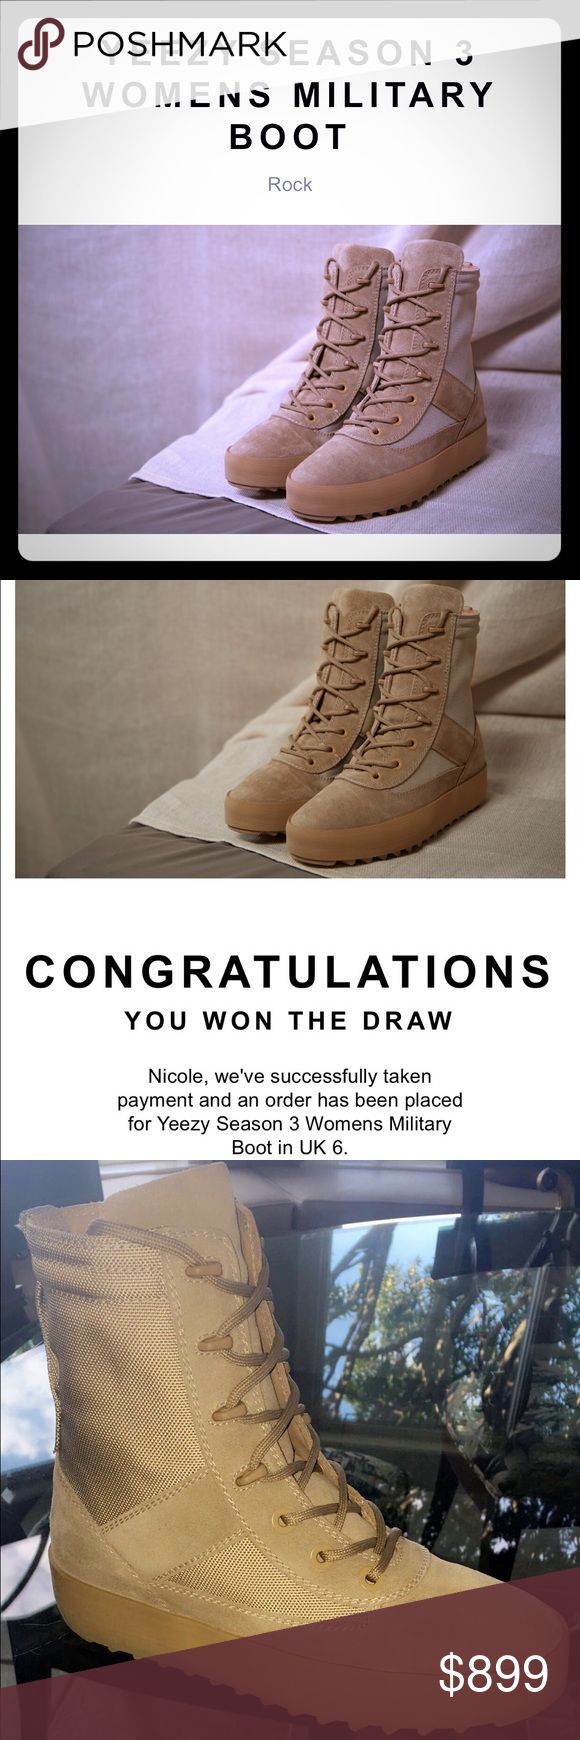 YEEZY SEASON 3 women's military boot For sale is an authentic pair of Yeezy Season 3 military boot. Women's UK size 6 which is US women's size 8.5/9. They come with receipt and original packaging. New in box never worn! Yeezy Shoes Combat & Moto Boots